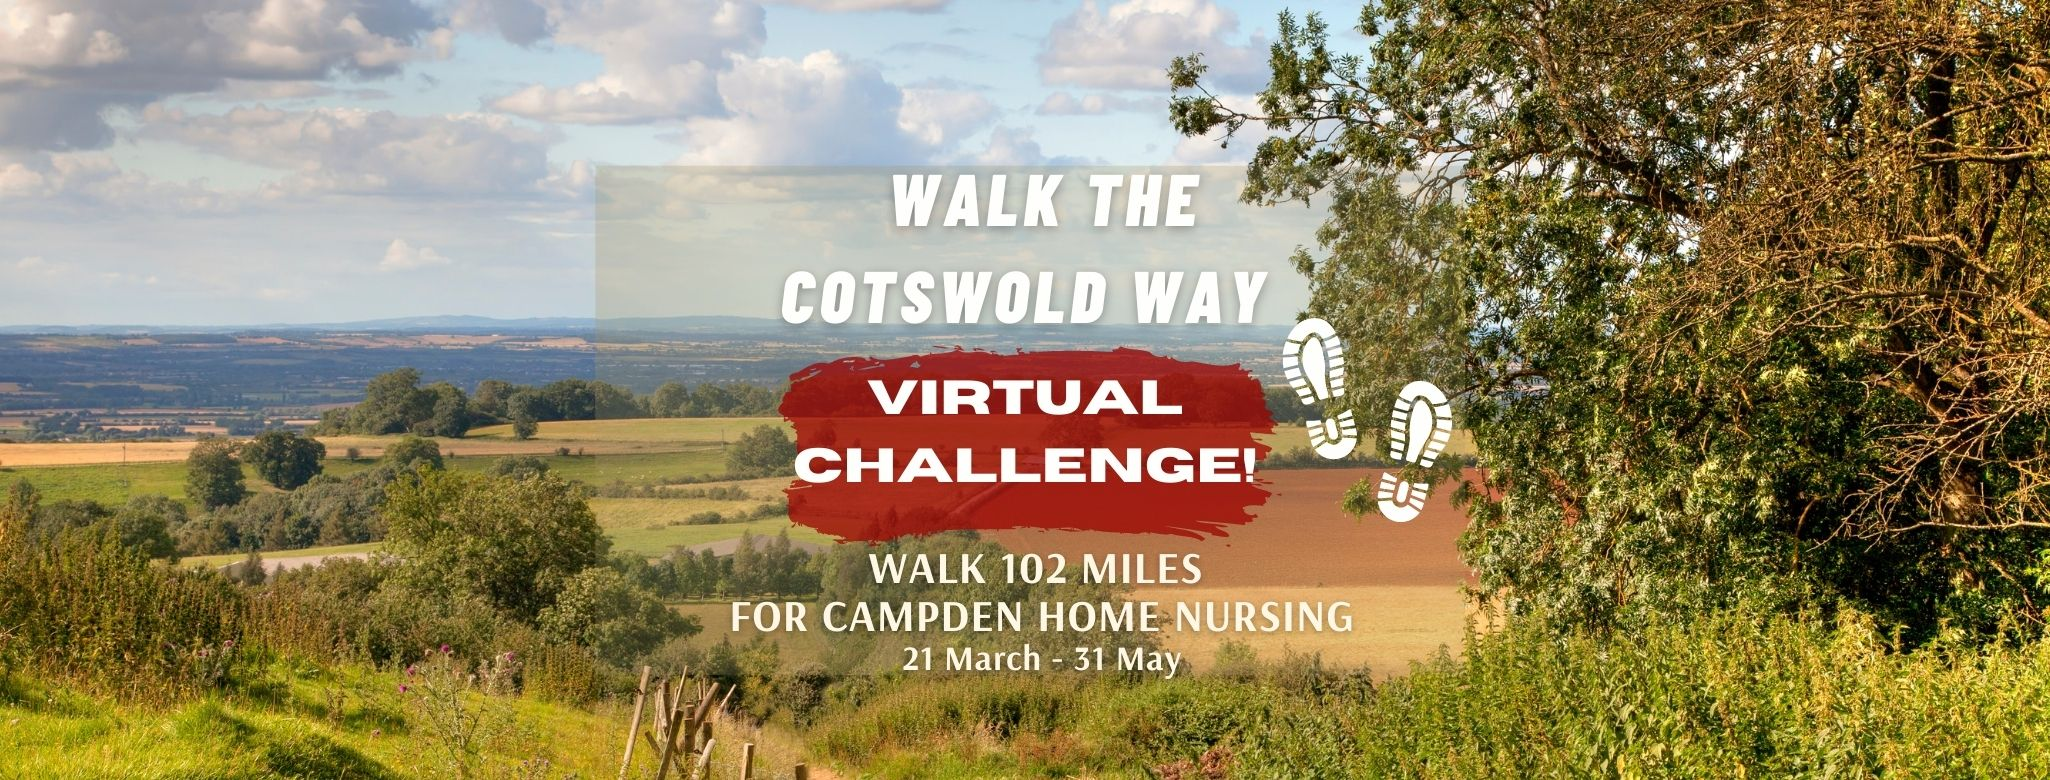 Walk The Cotswold Way (virtually)